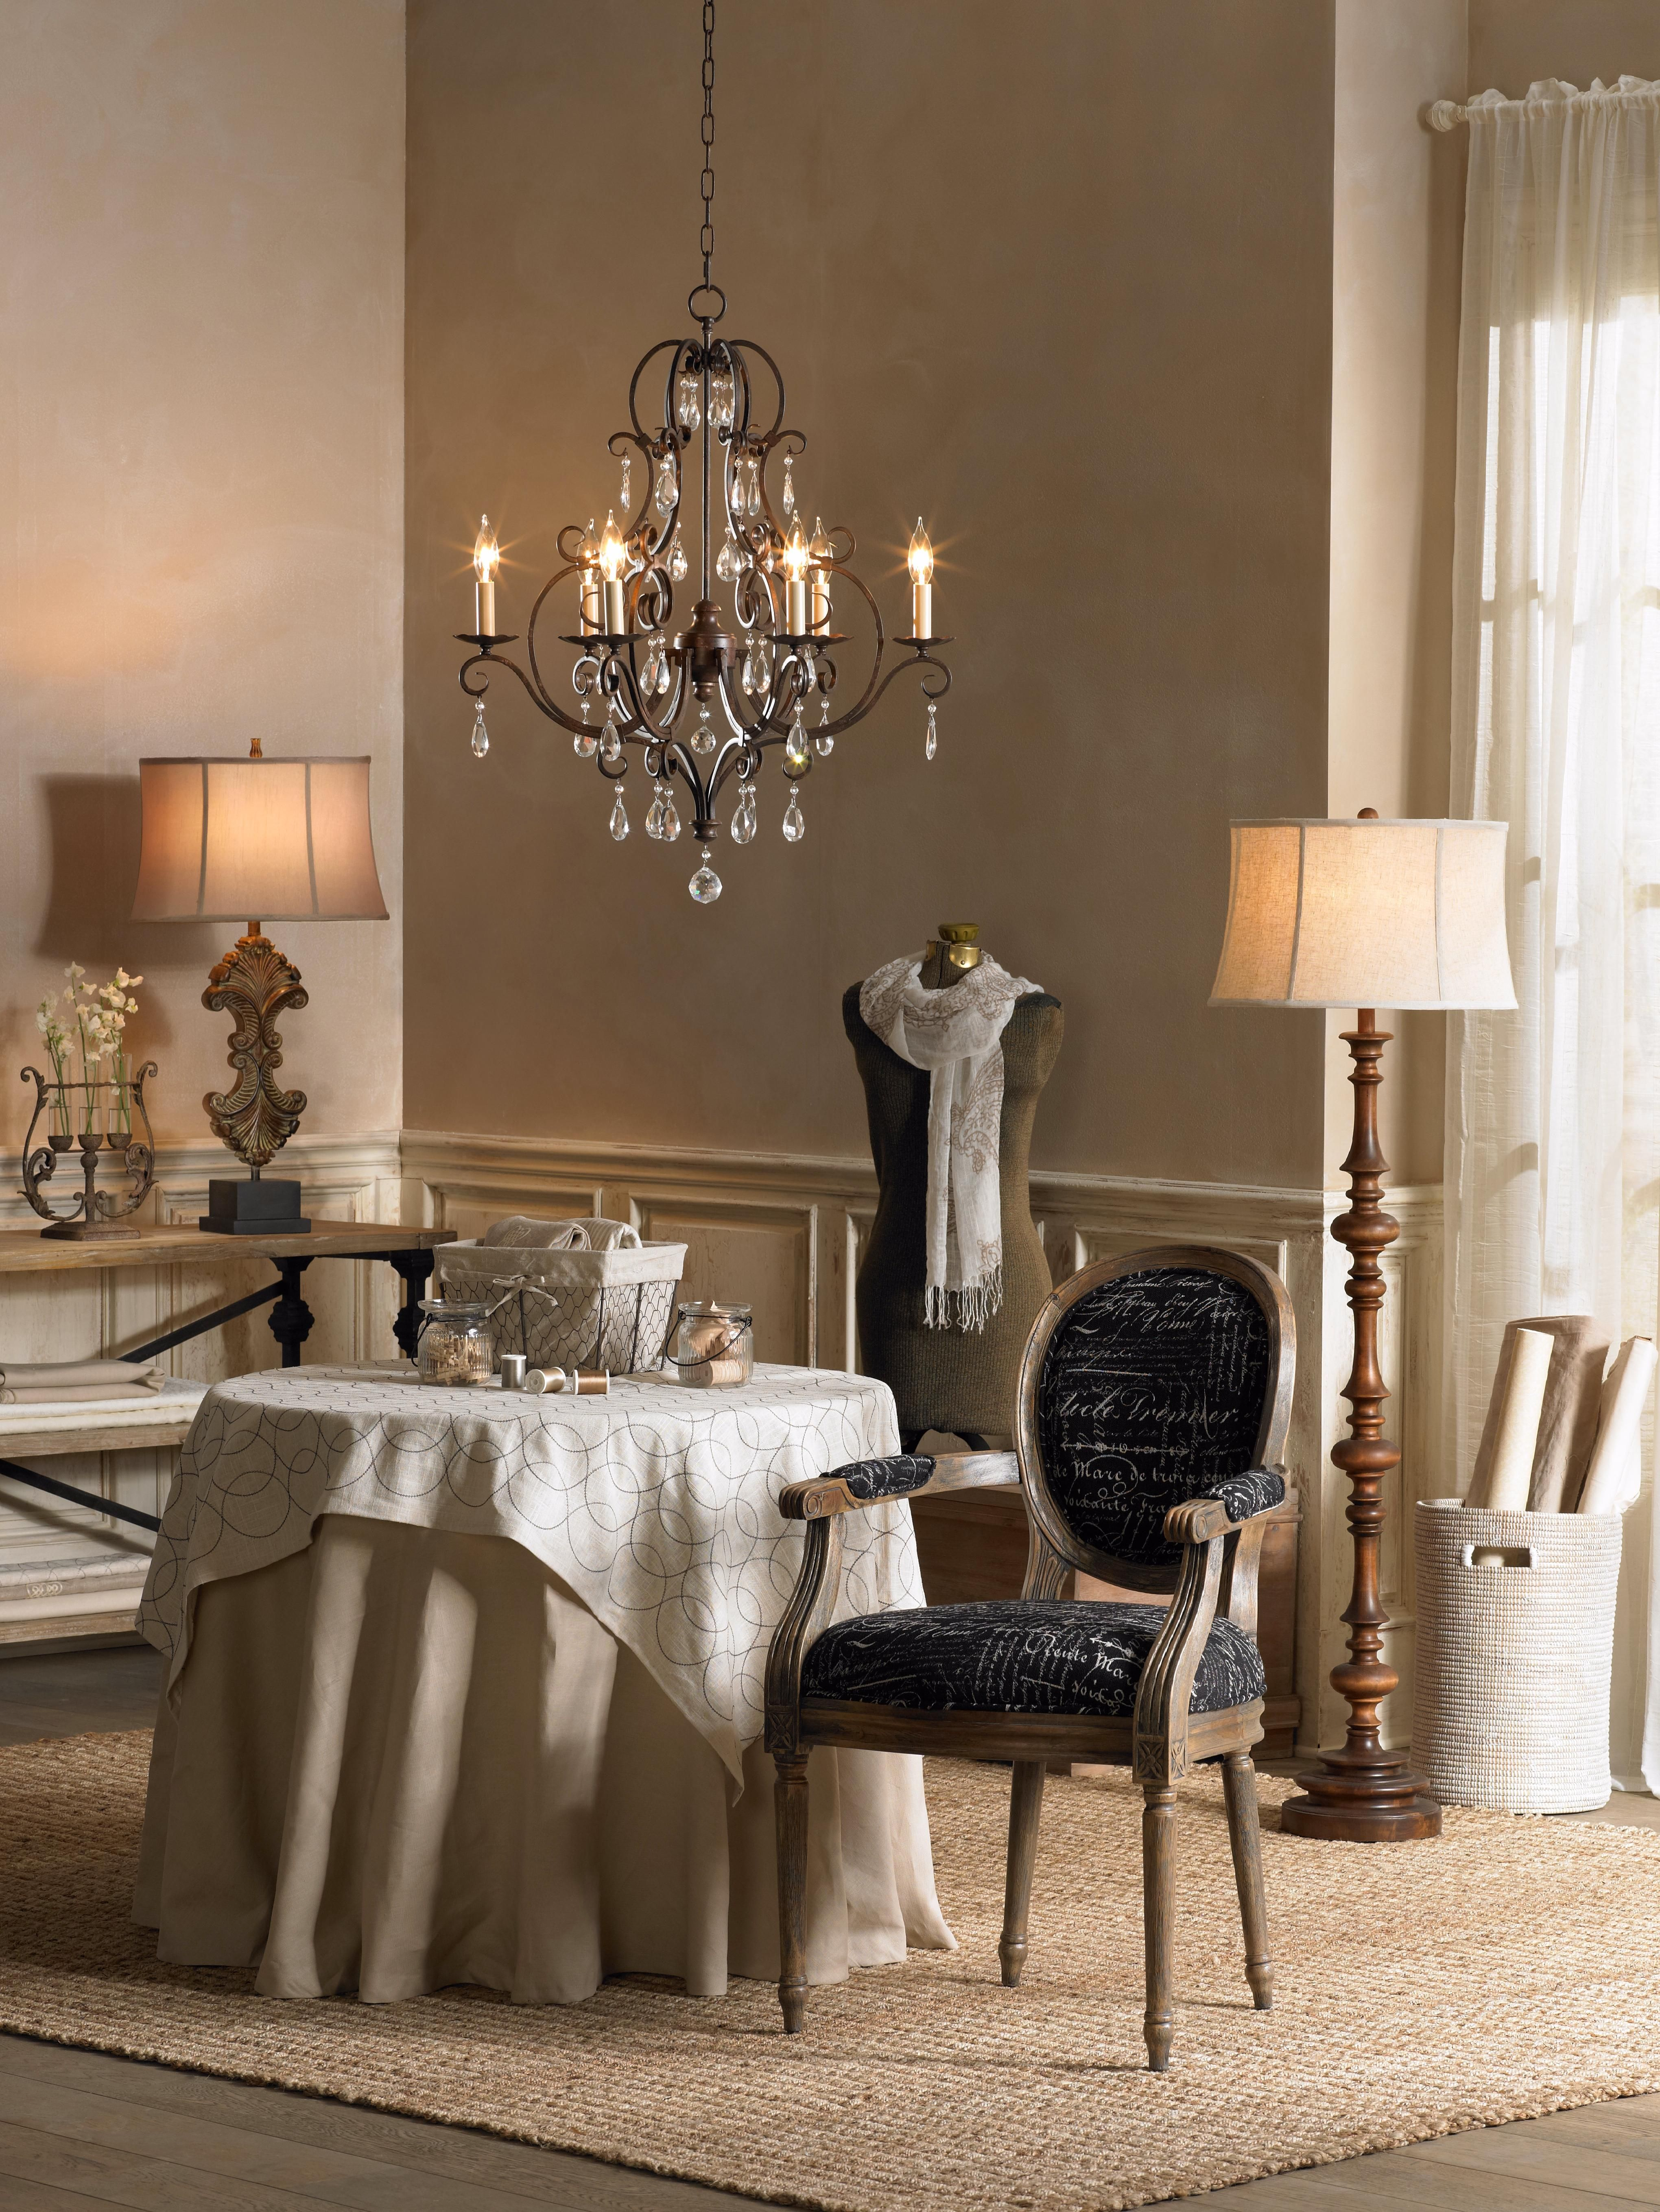 Feiss chateau collection mocha bronze crystal chandelier new house feiss chateau collection mocha bronze crystal chandelier aloadofball Gallery